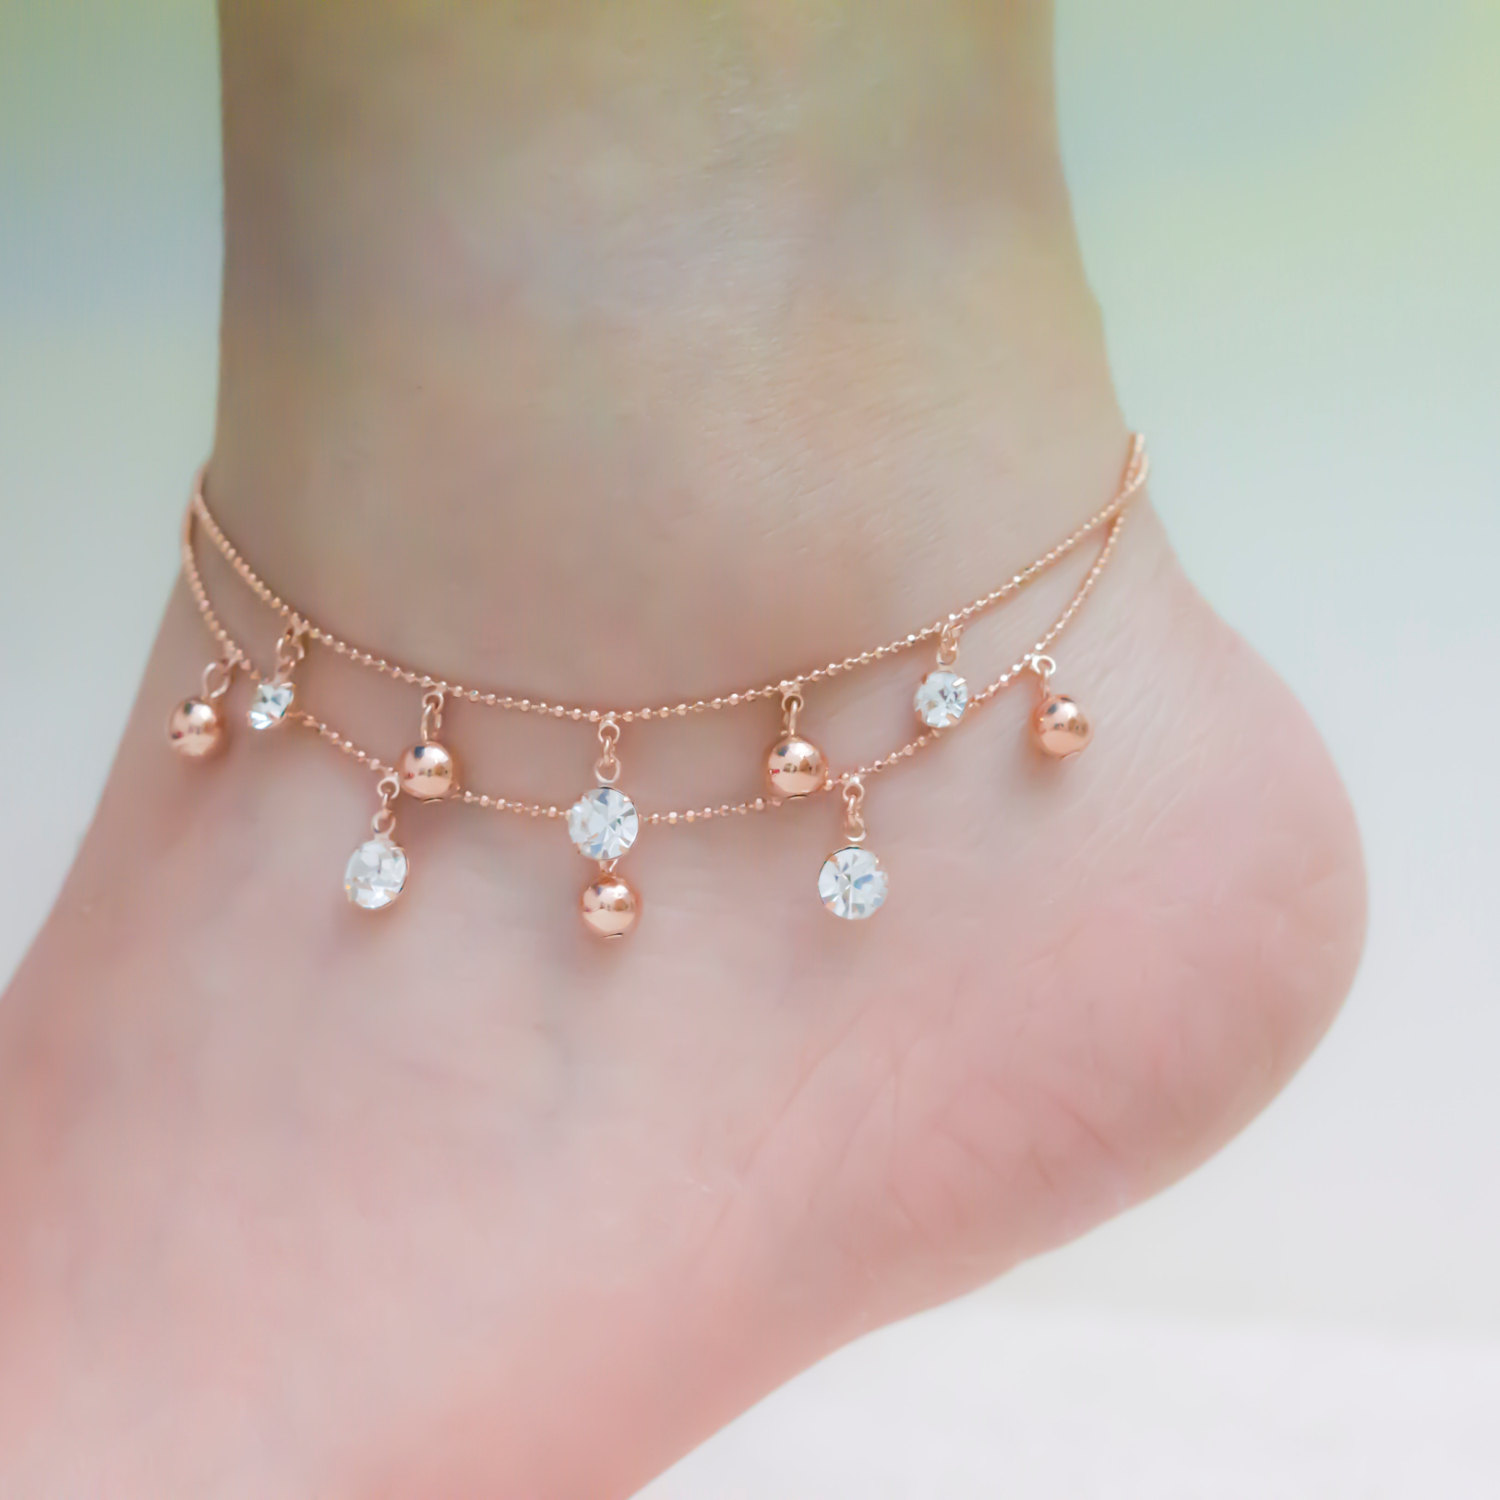 ksvhs girl pretty anklet baby moonstone newborn jewelry bracelets ankle and bracelet child jewellery beautiful